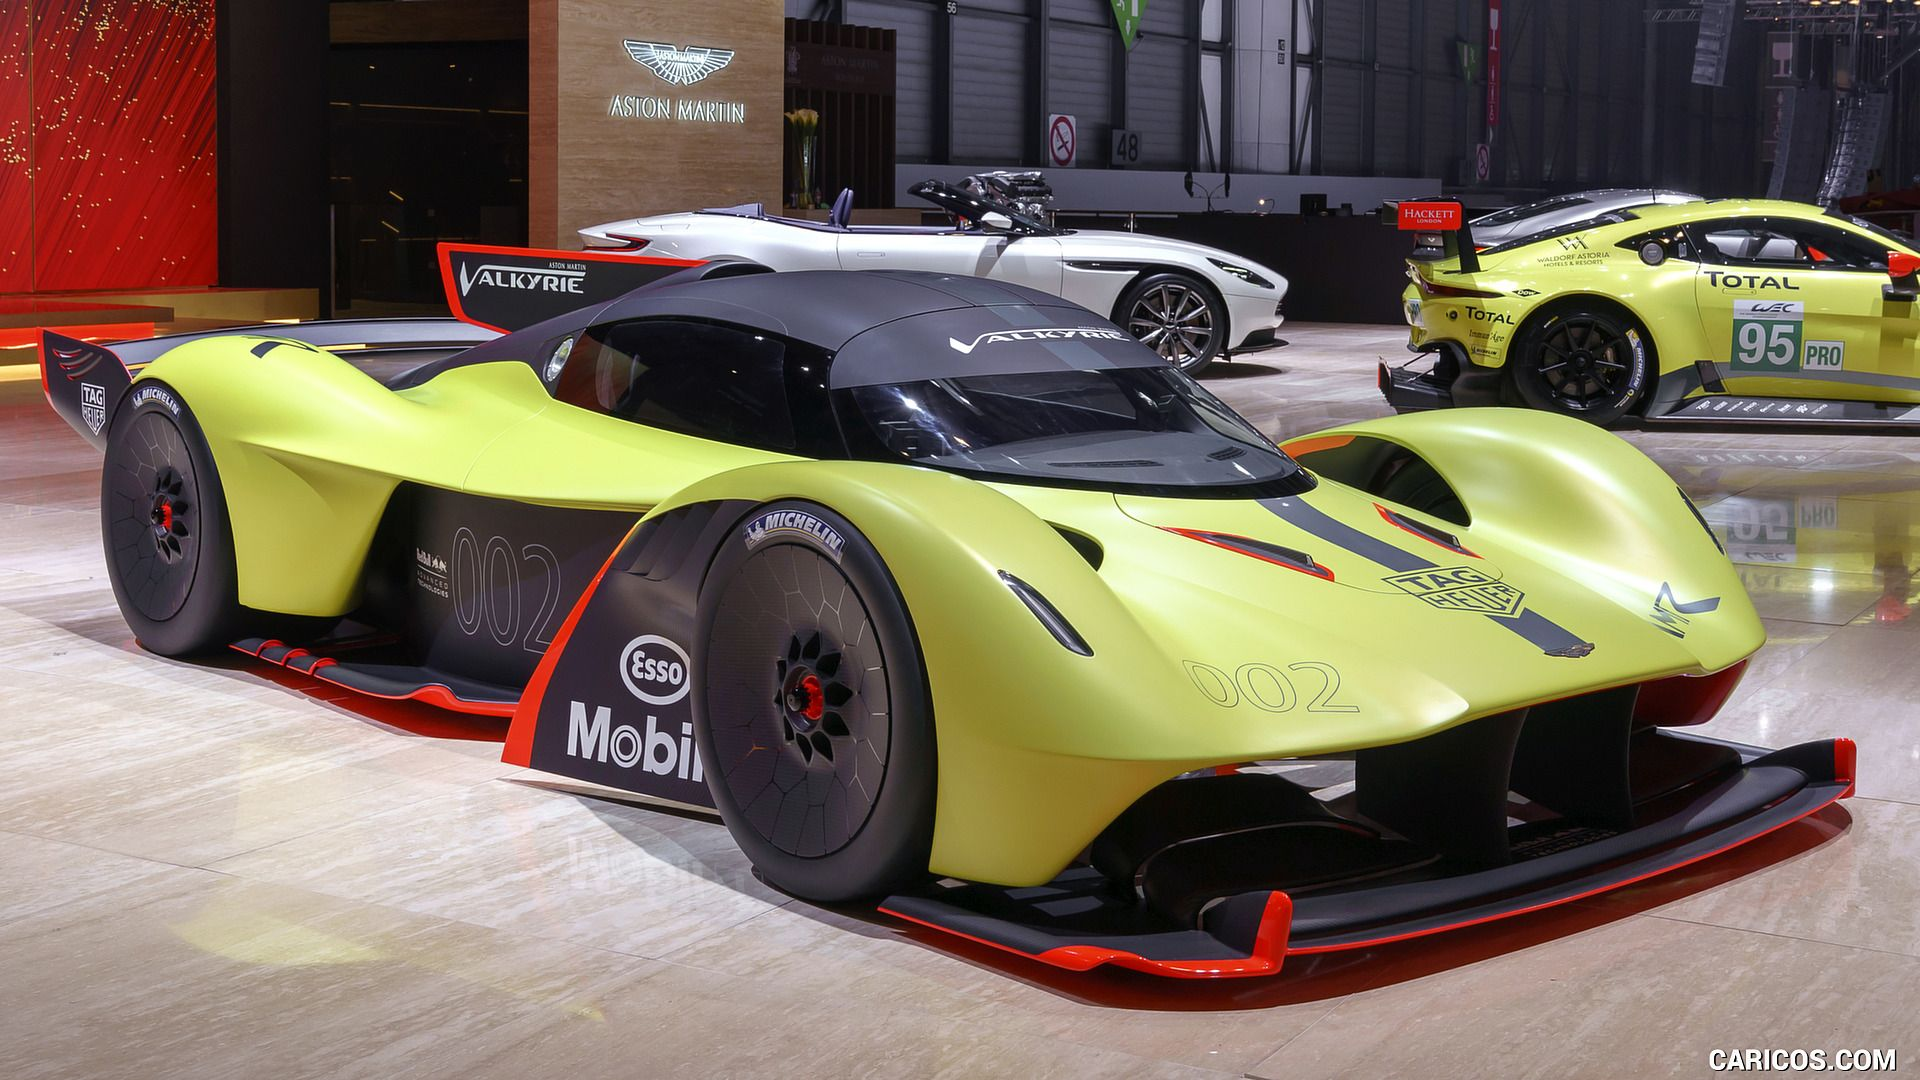 2018 Aston Martin Valkyrie Amr Pro Wallpaper Aston Martin New